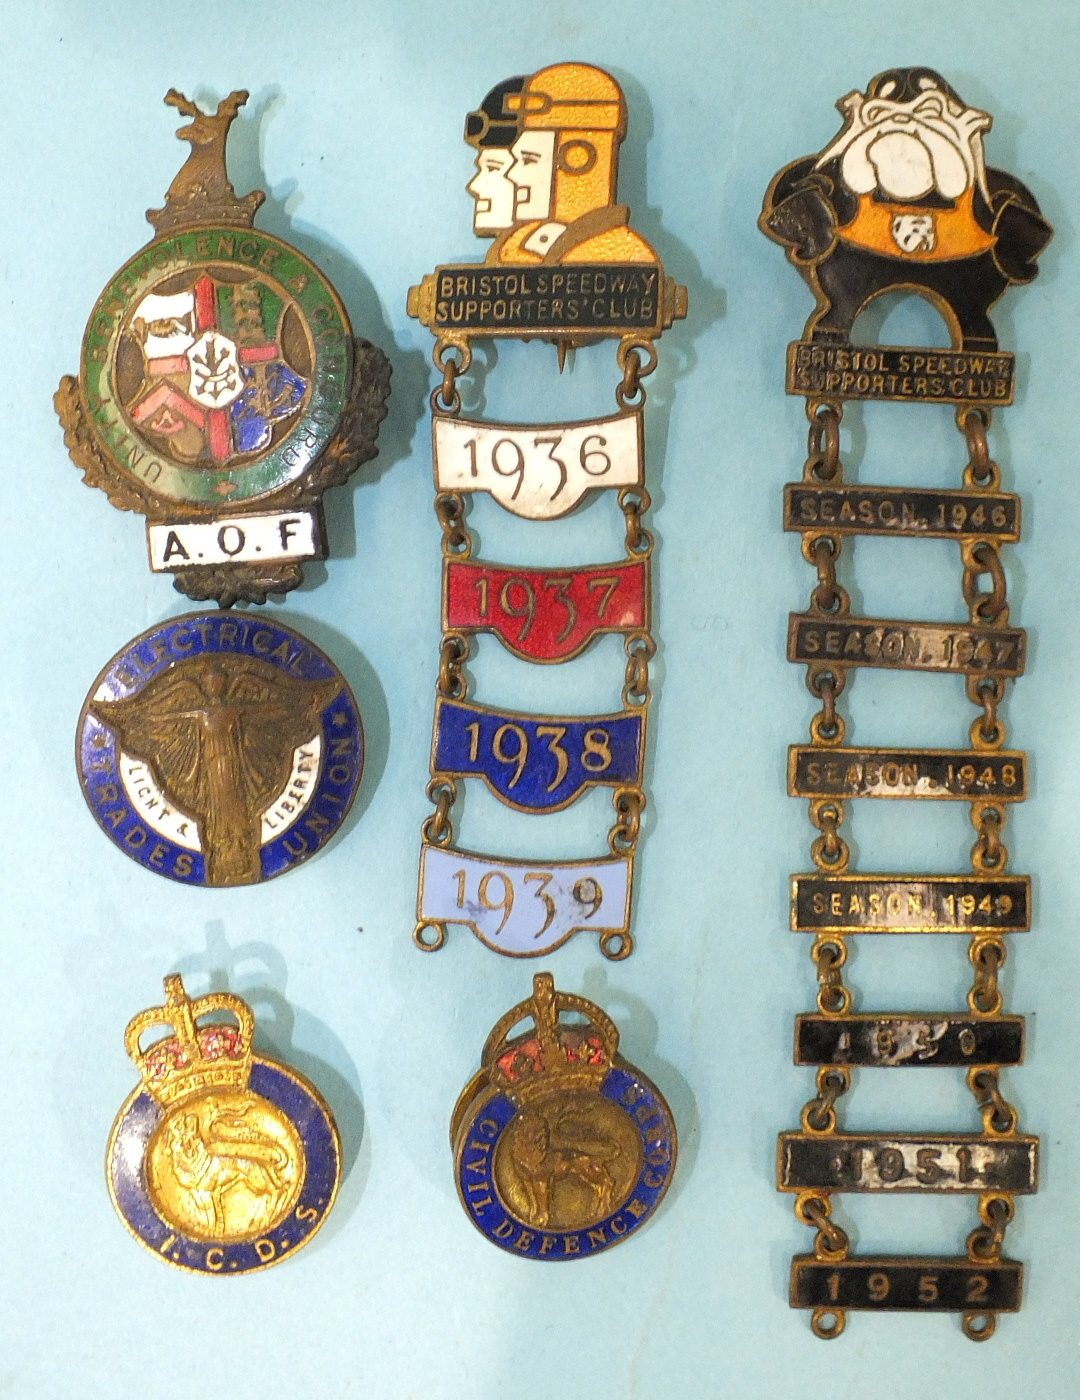 Lot 553 - An original 1930's Bristol Speedway badge by Thomas Fattorini, with season bars for 1936/37/38/39,